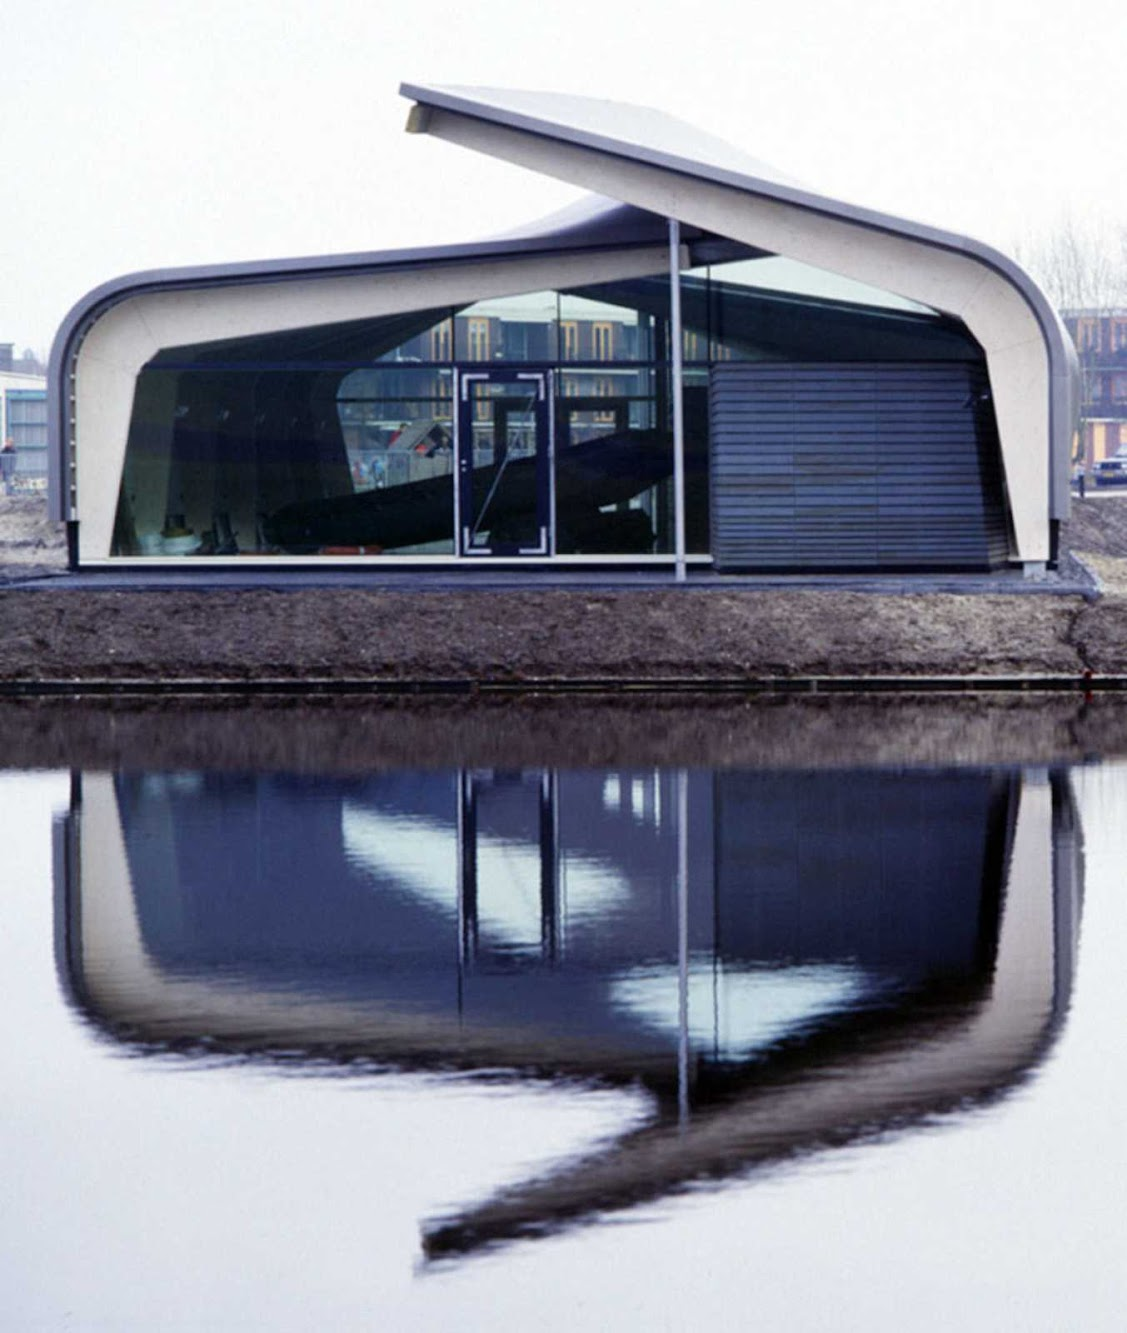 René Van Zuuk Architects